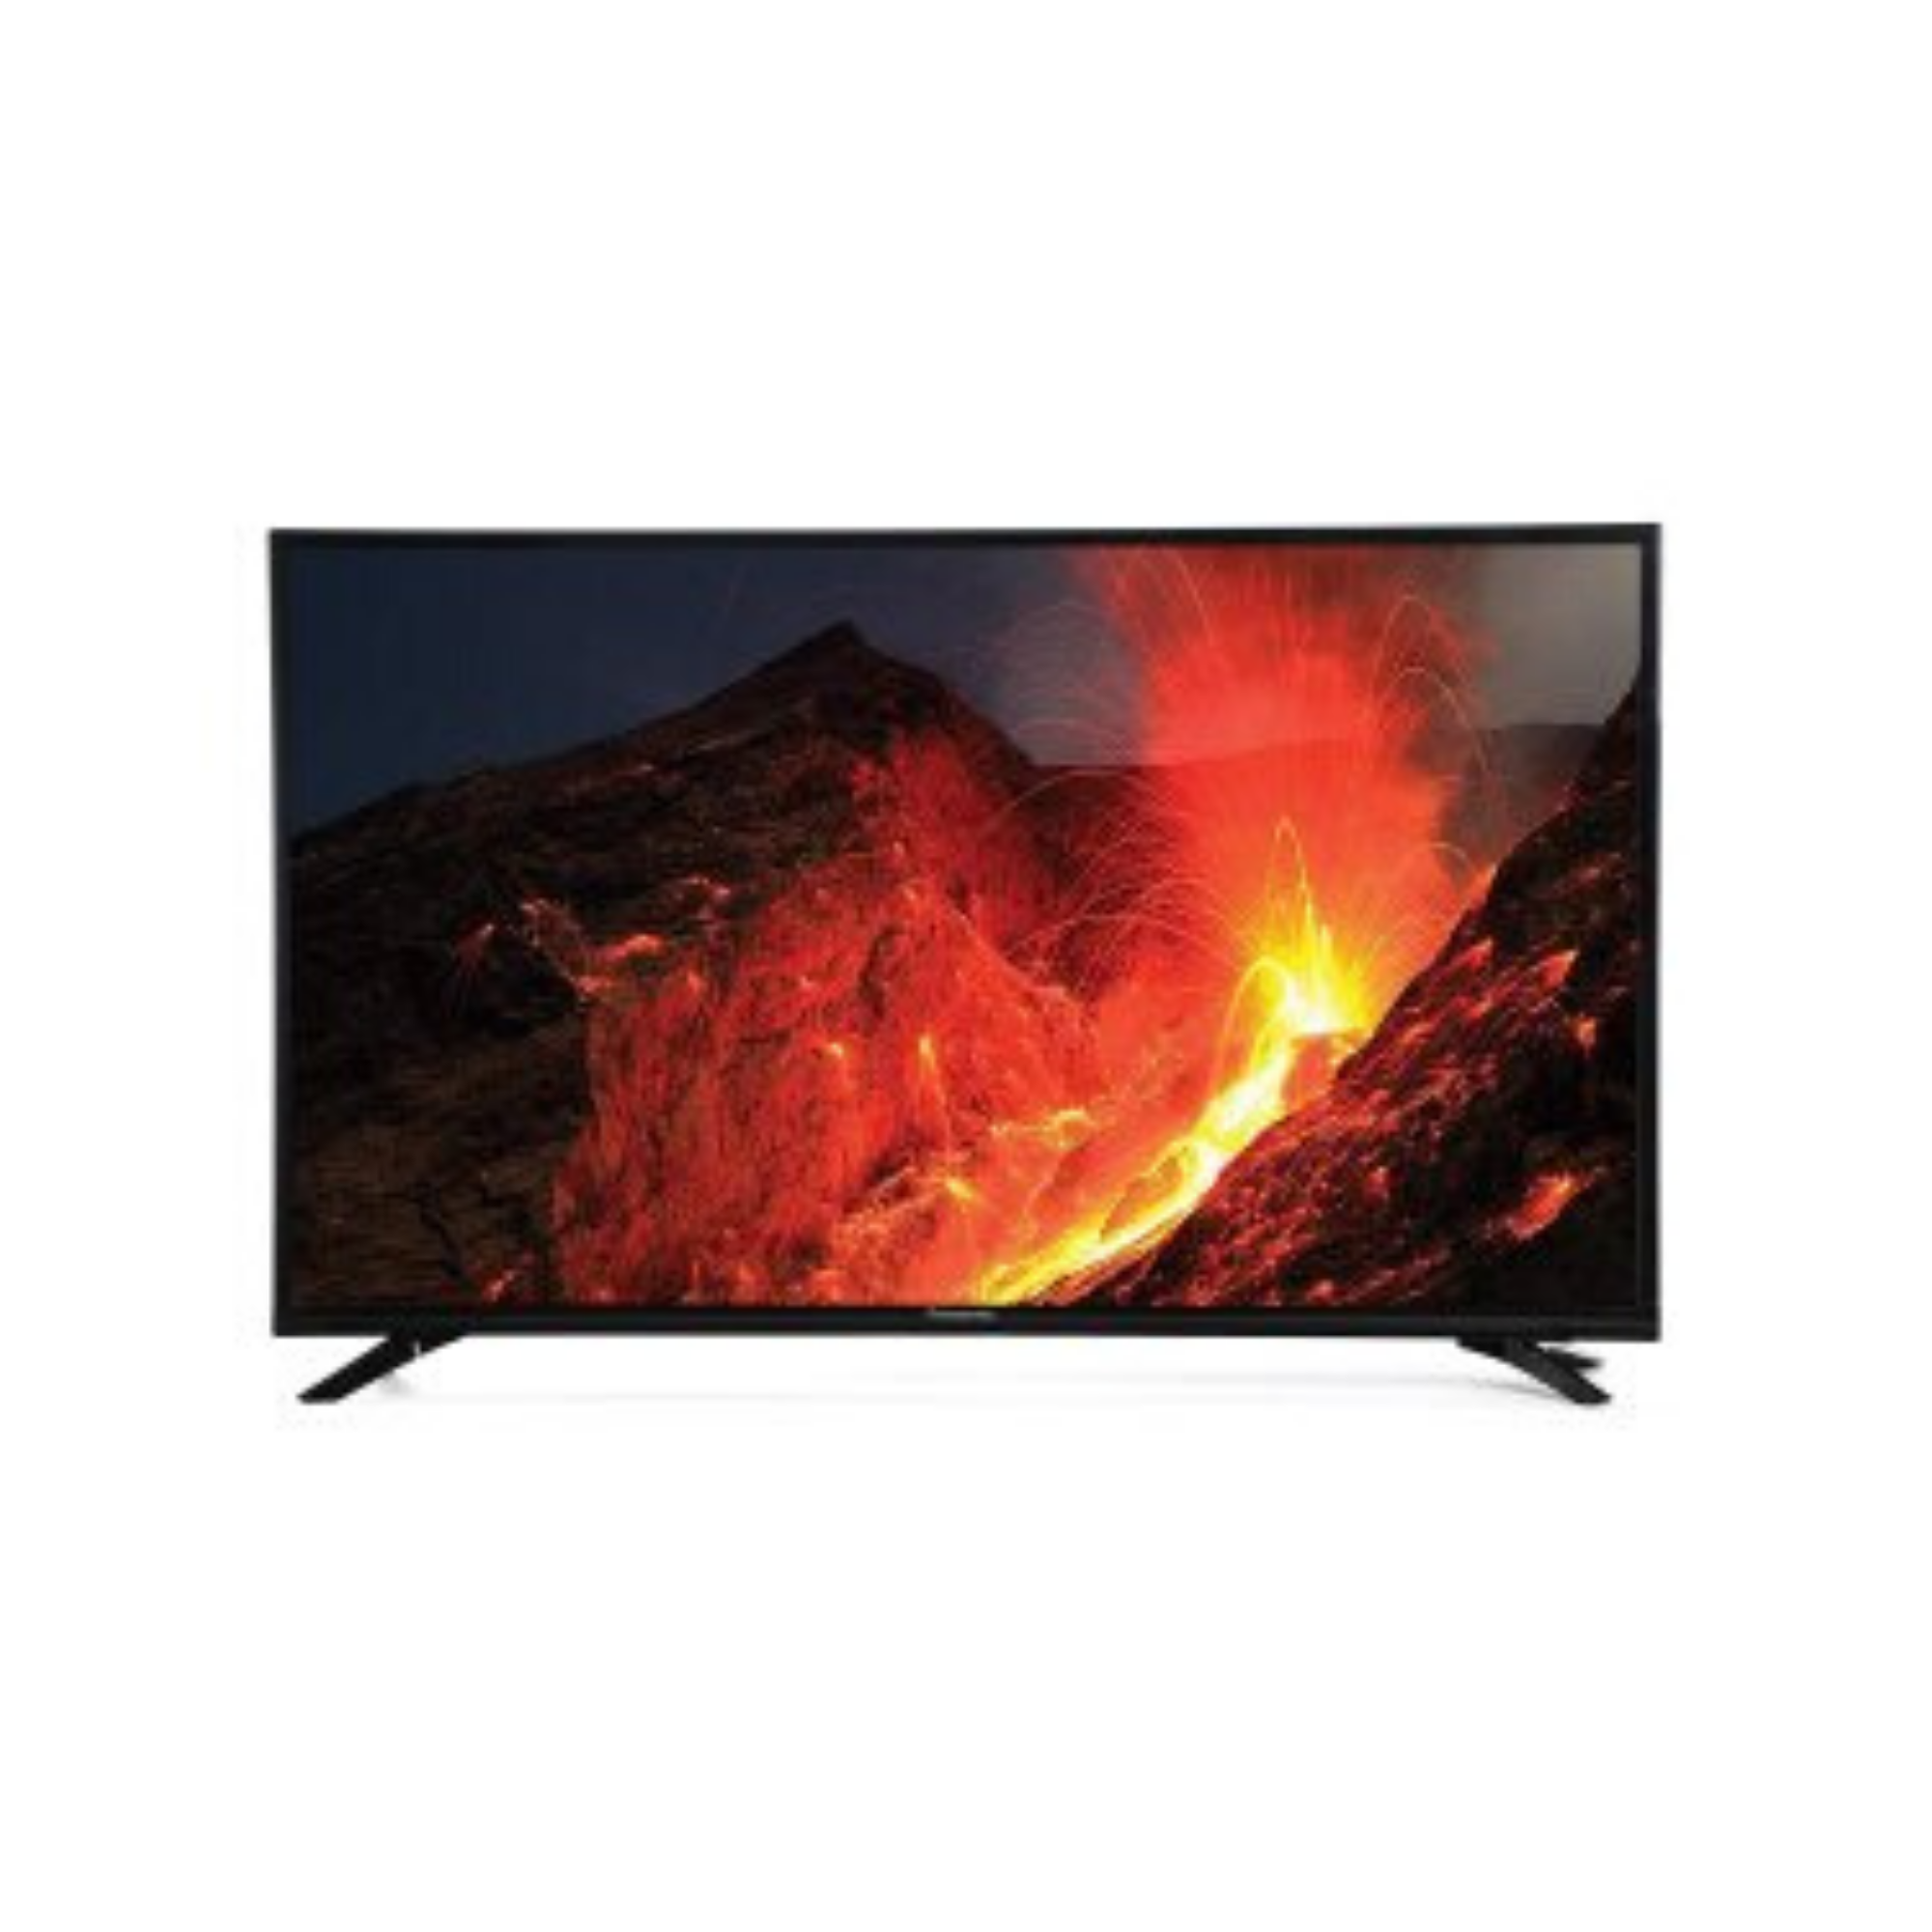 Panasonic 80 cm (32 Inches) HD Ready LED TV TH- 32F204DX (Black)